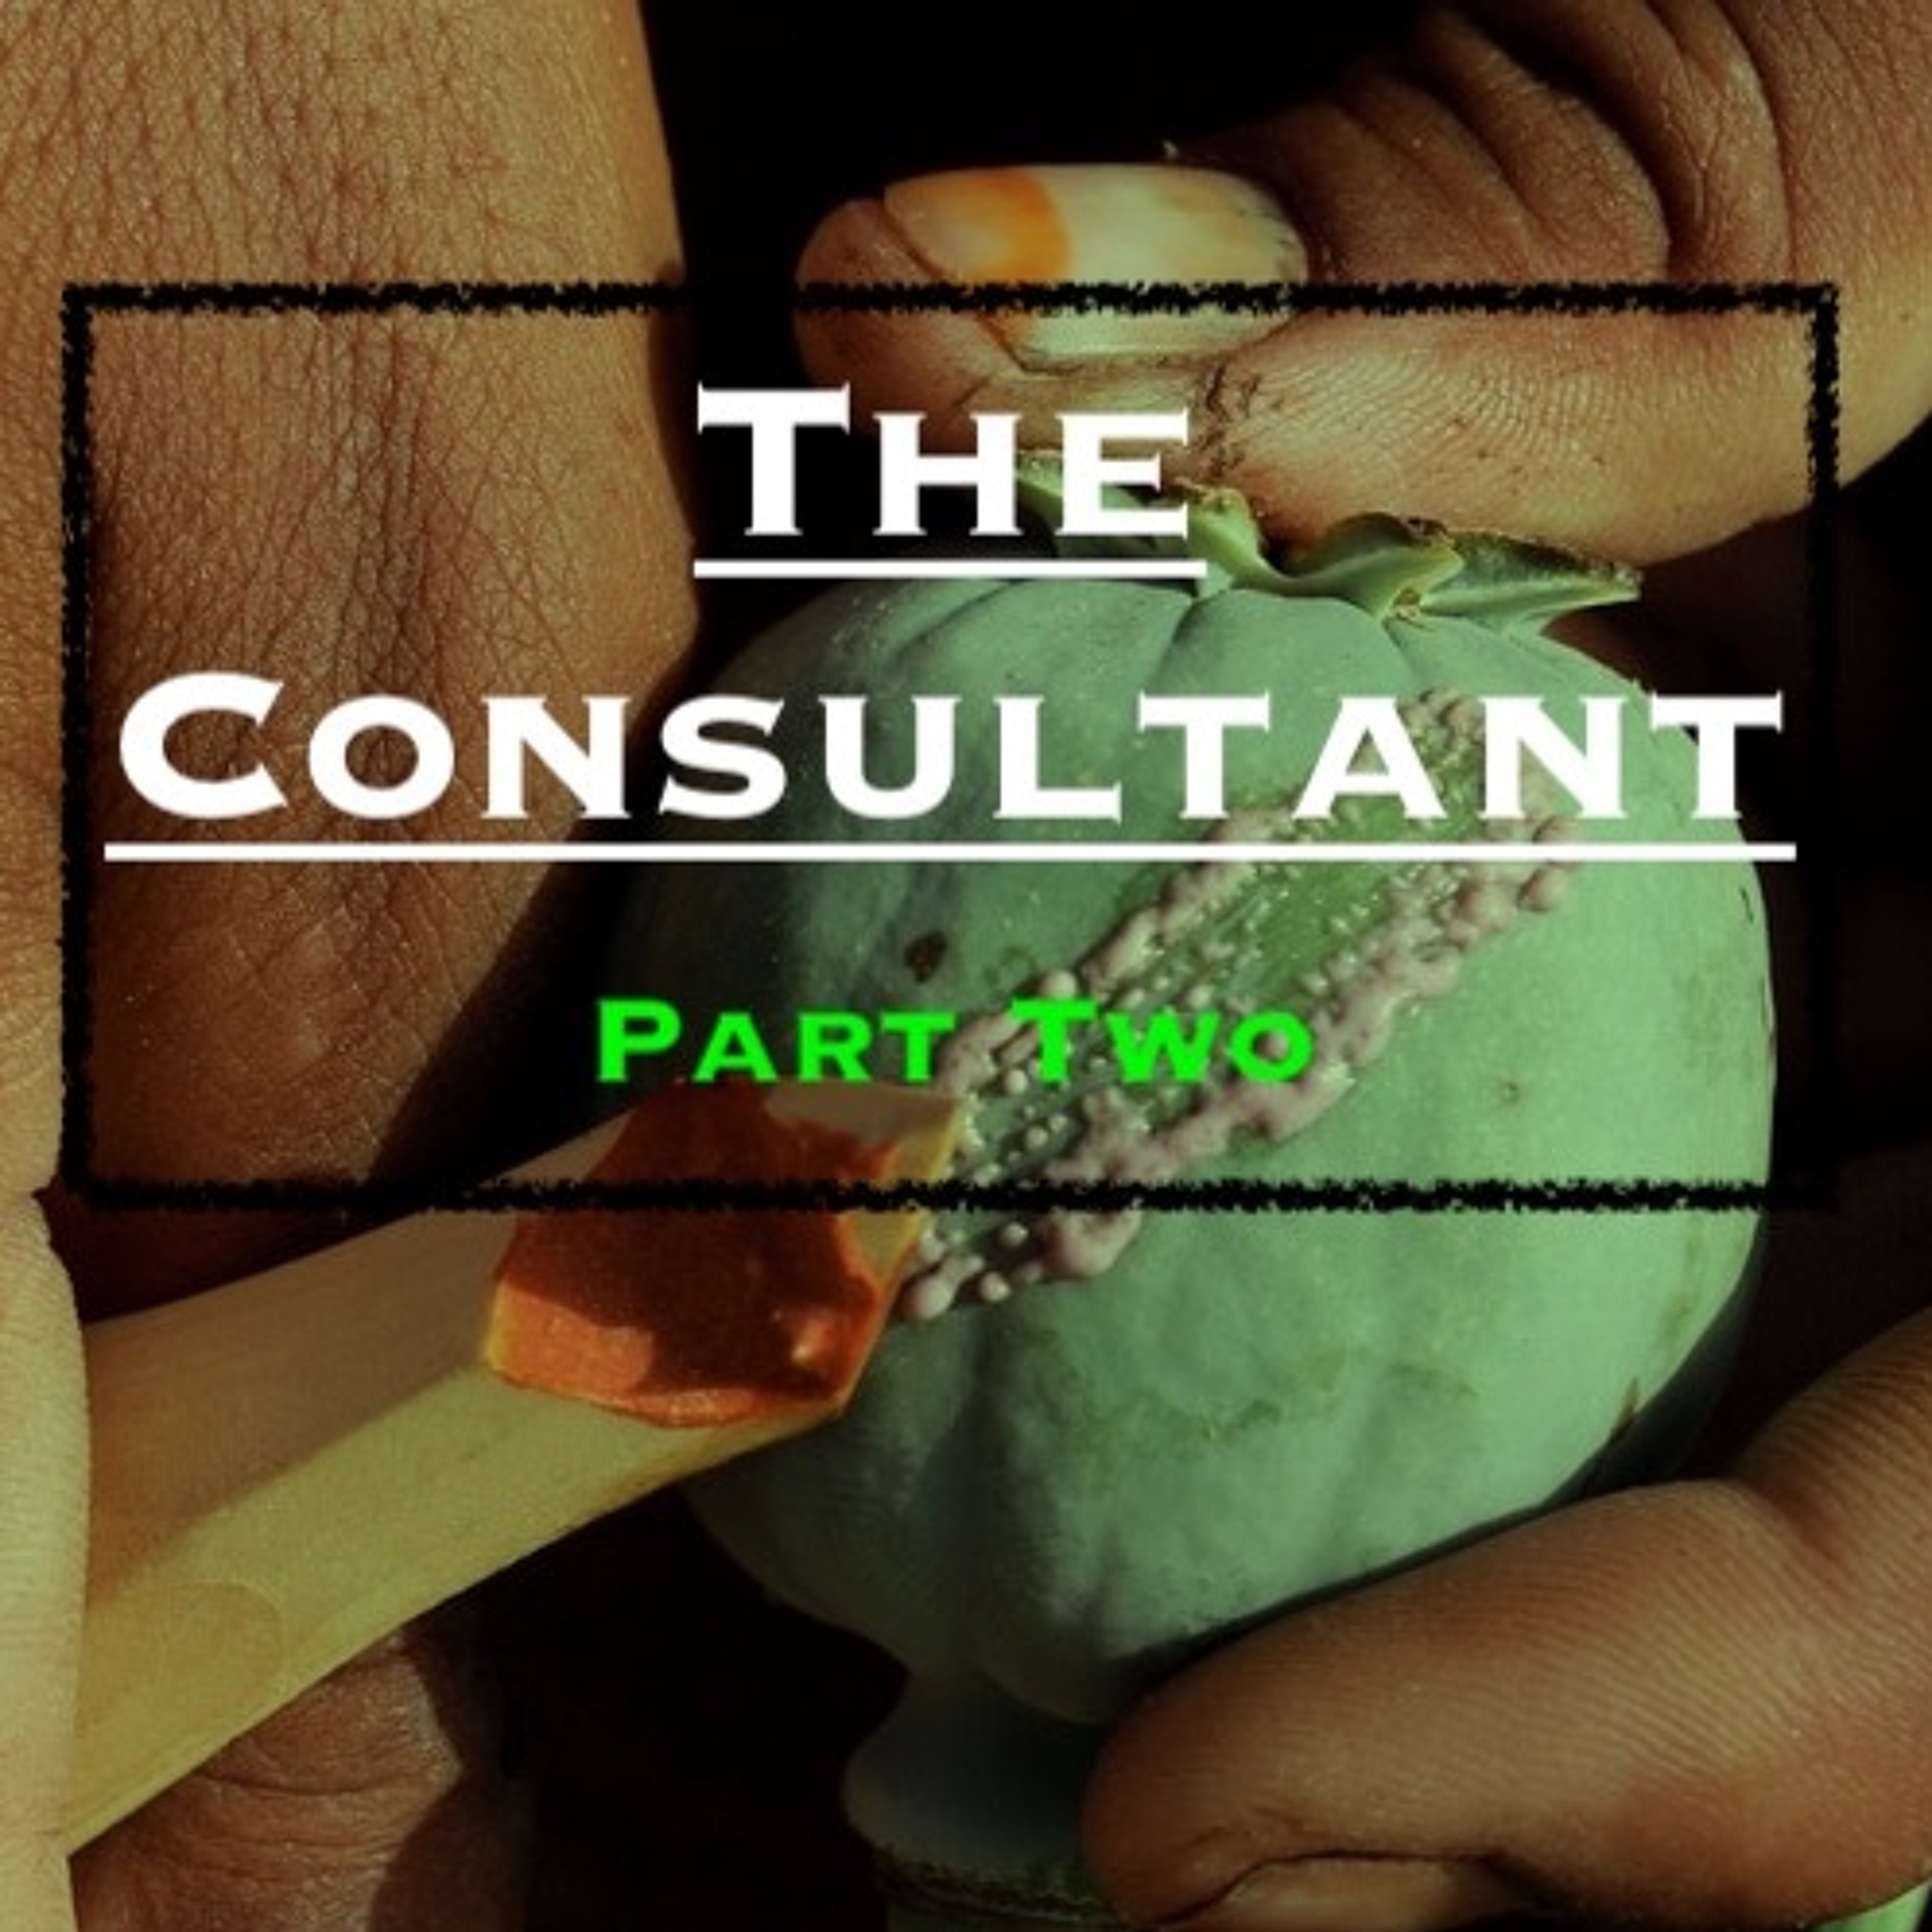 Ep44. 'The Consultant - An International Special Services Provider' - Part 2